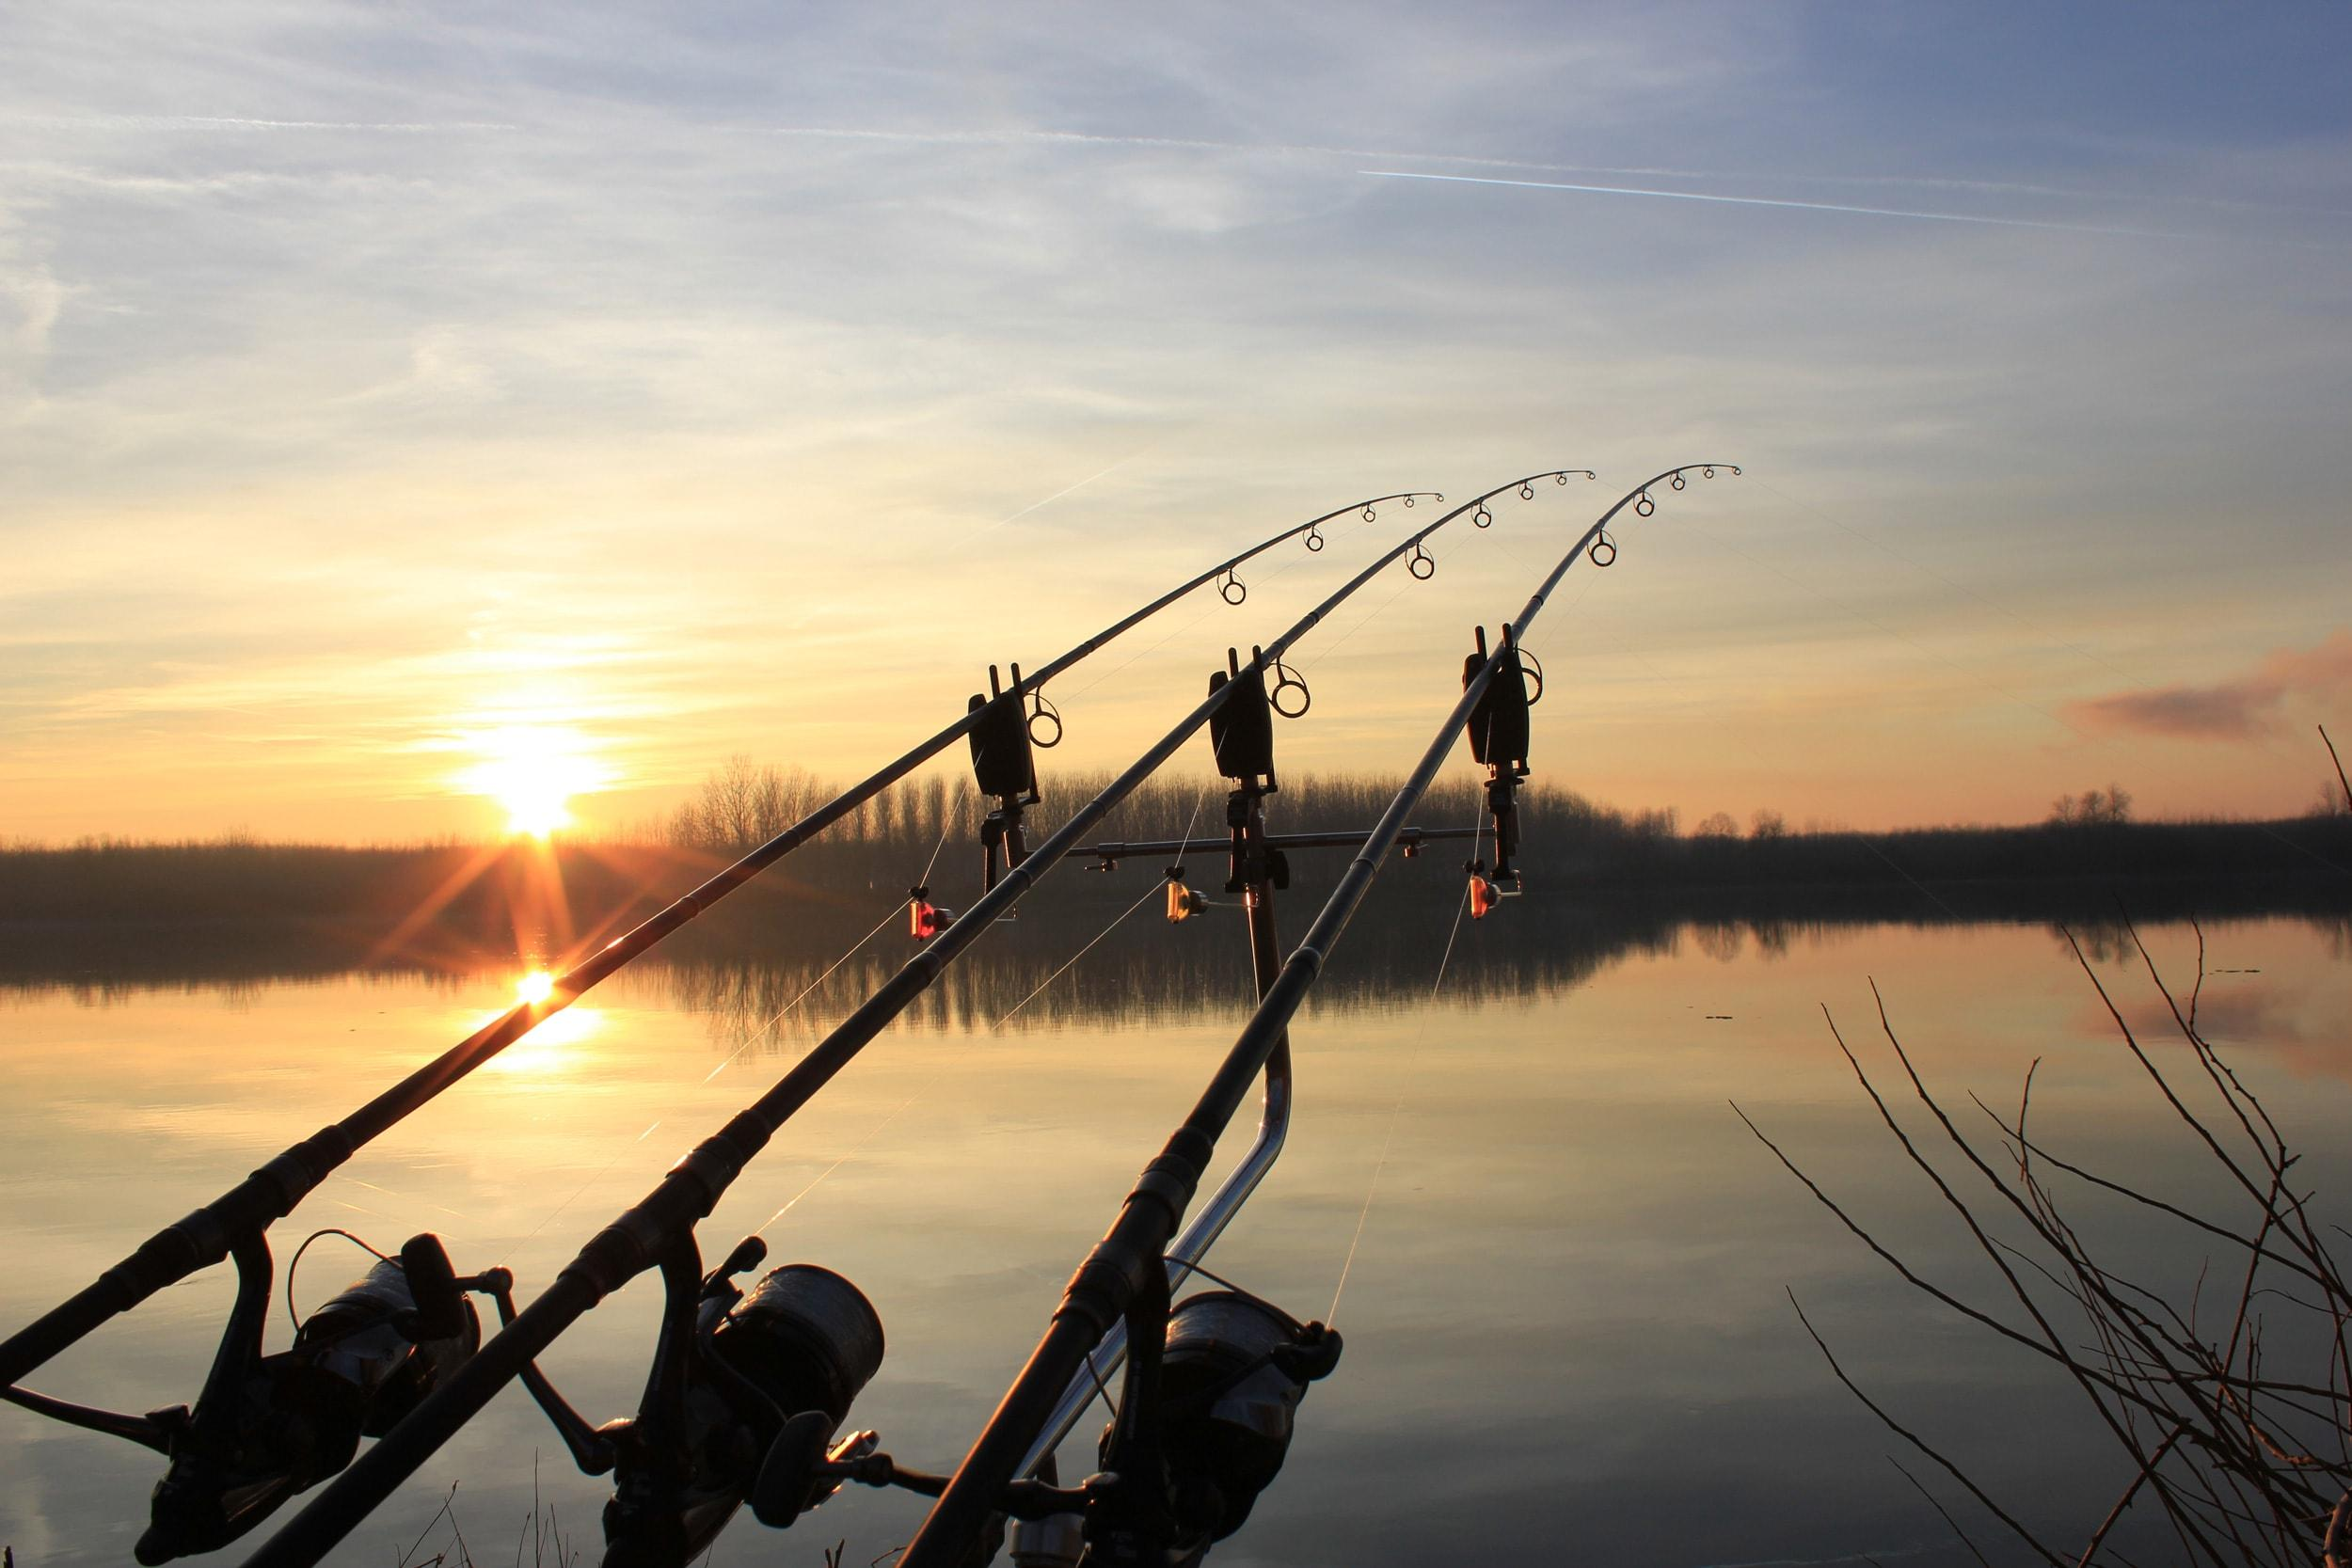 Hd Fishing Wallpapers Posted By Ethan Simpson